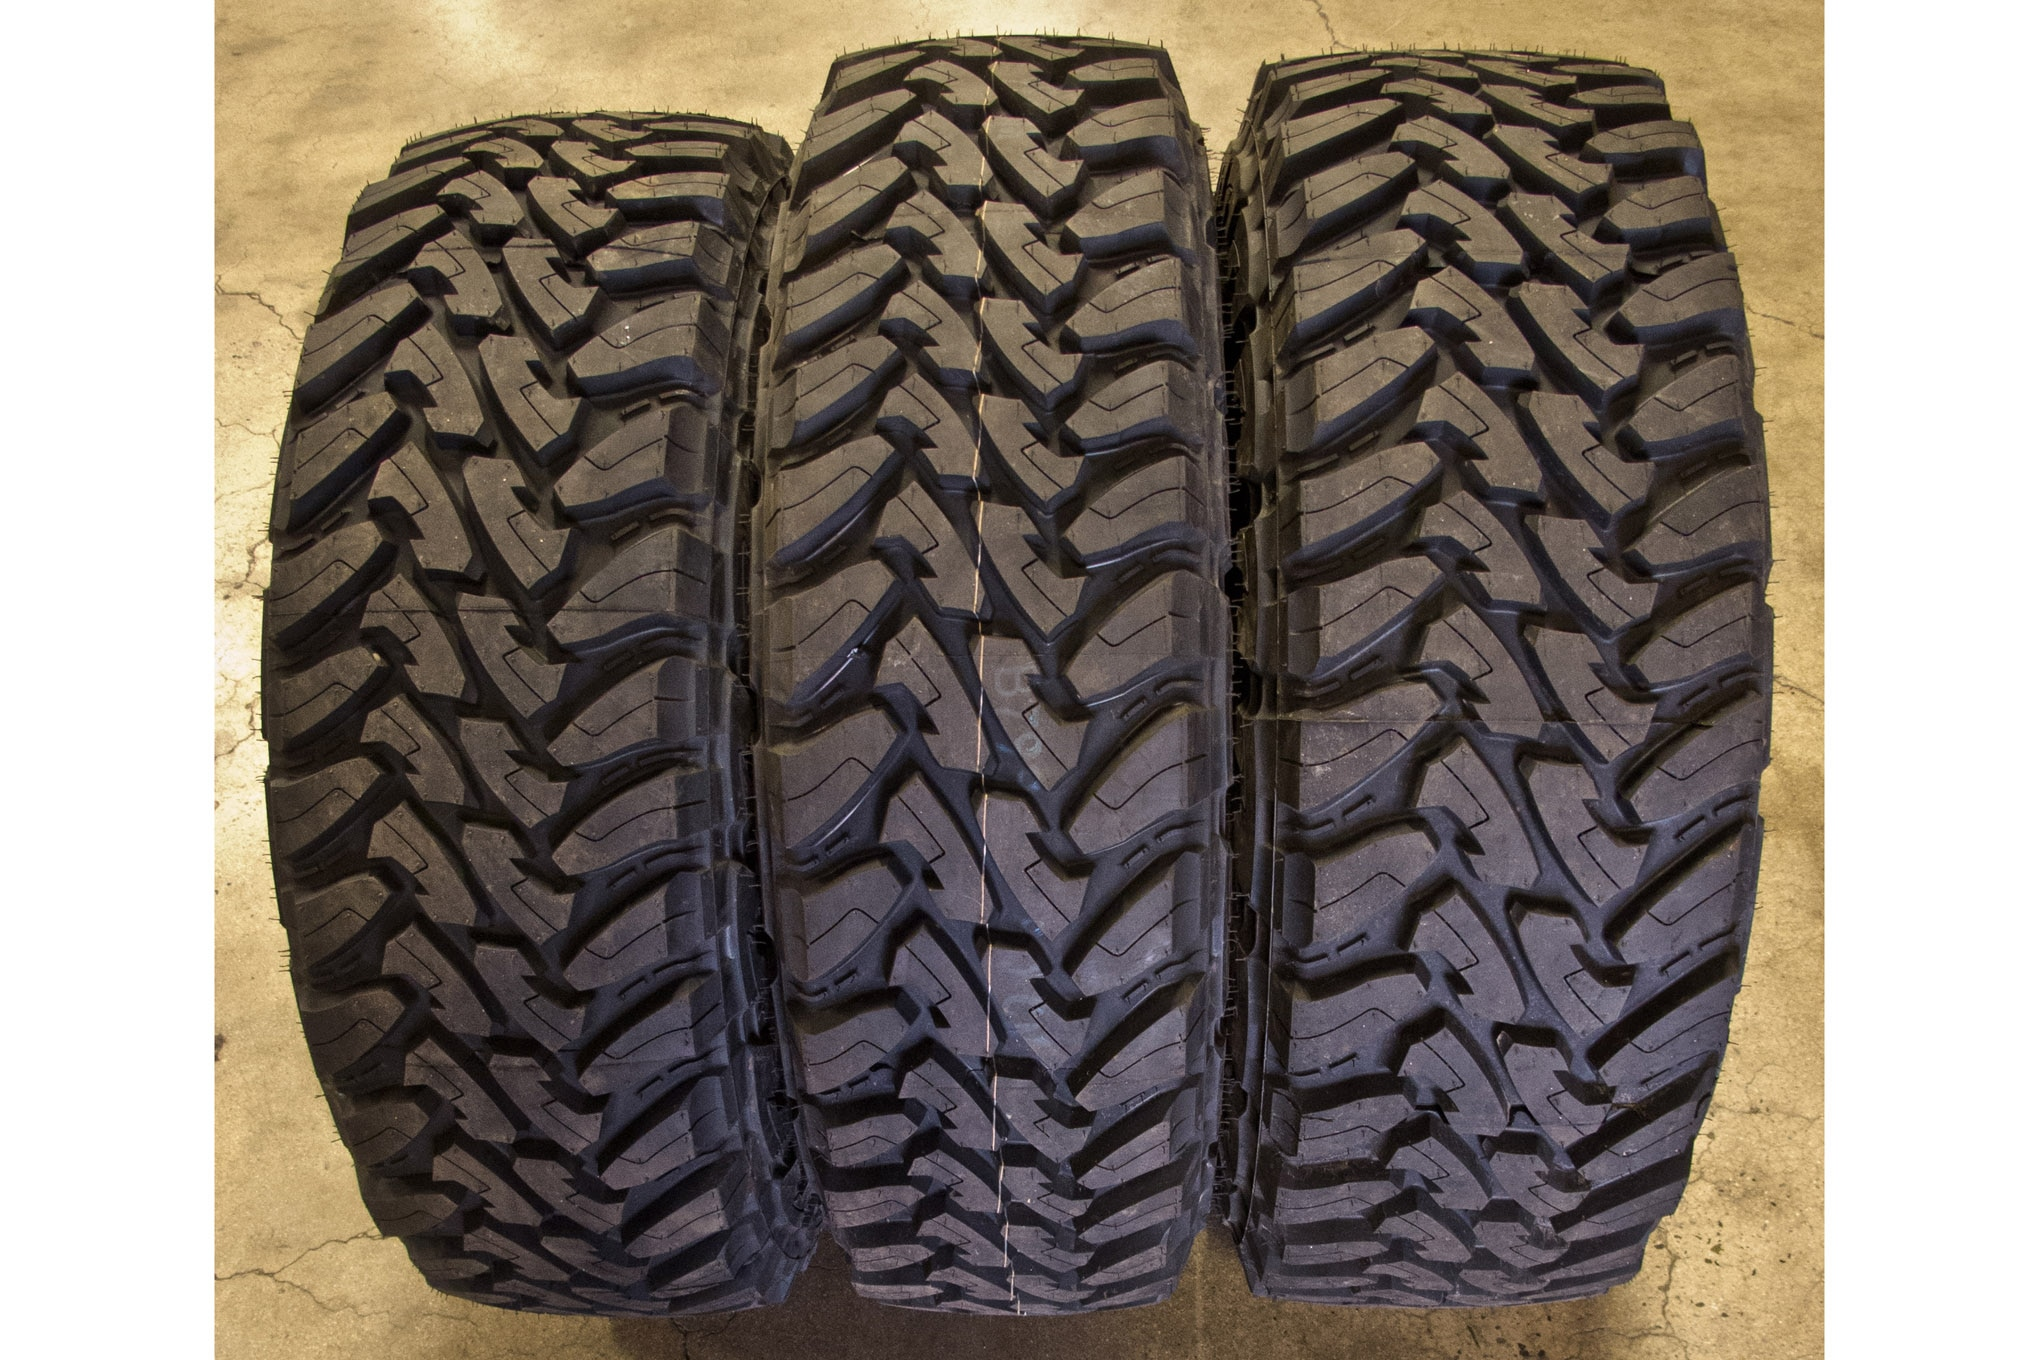 Some tires are offered in a variety of widths. For example, 255/85R16, 285/75R16, and 305/70R16 are all approximately 33 inches tall but vary in width. Toyo offers the Open Country M/T (shown) and BFGoodrich offers the Mud Terrain KM2 in all three of these sizes, so you have options.